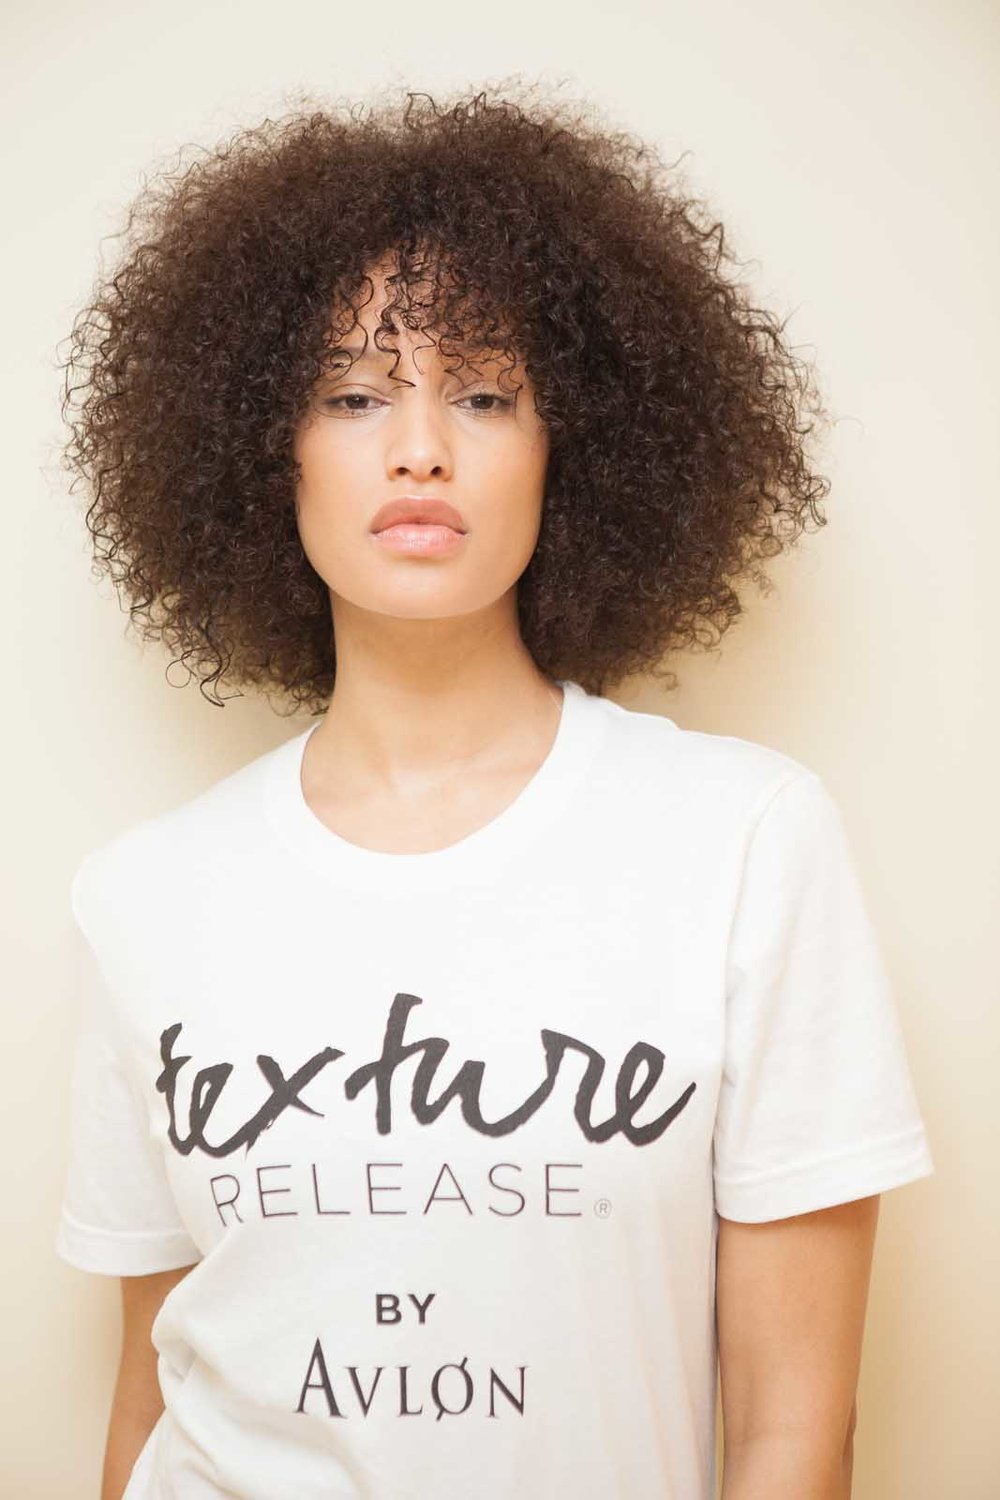 - The Texture Release™ Curl Shape & Shine Cream was worked through the hair root to tip to bolster texture and definition. For more volume, sections were wrapped round a curling wand and teased out to form a dramatic afro shape.